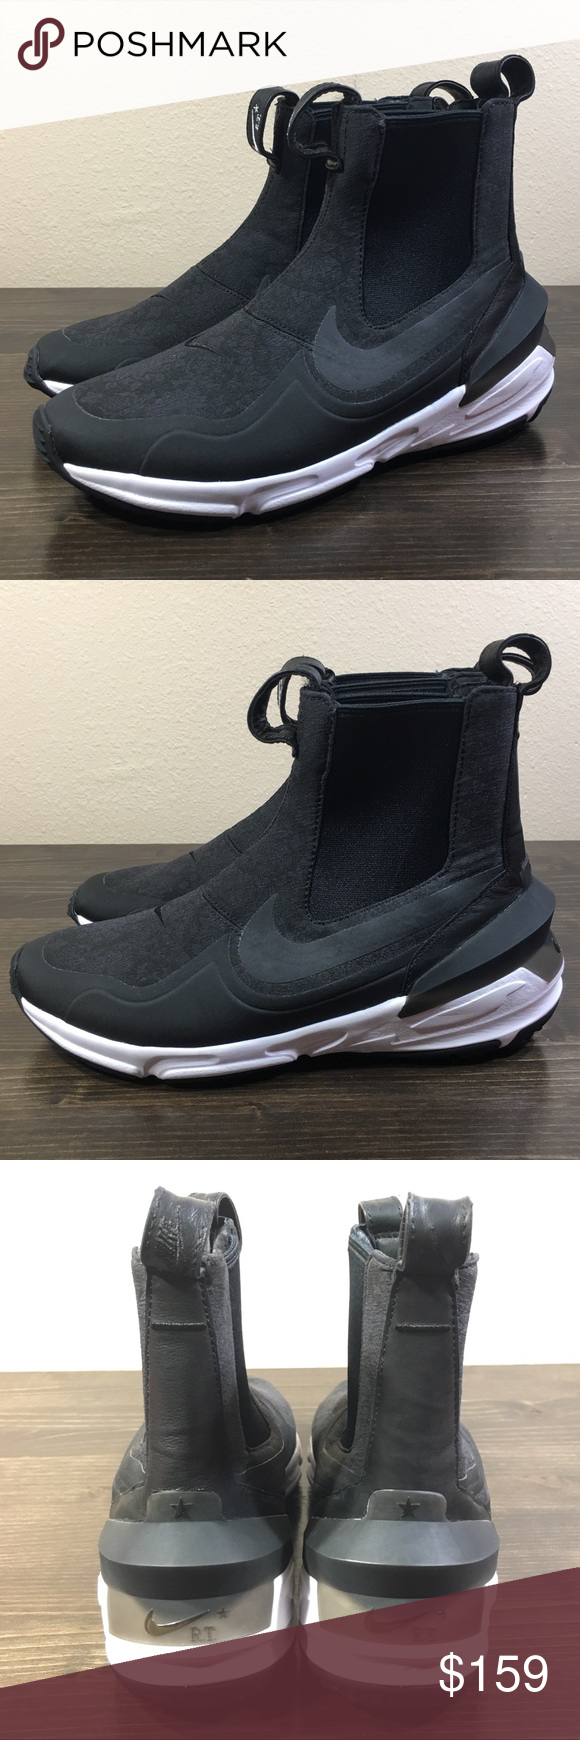 f5e818317668 Nike NikeLab Air Zoom Legend RT Riccardo Tisci Brand New without Box B  Grade stamp on tag. No visible factory defects. By Designer Riccardo Tisci.